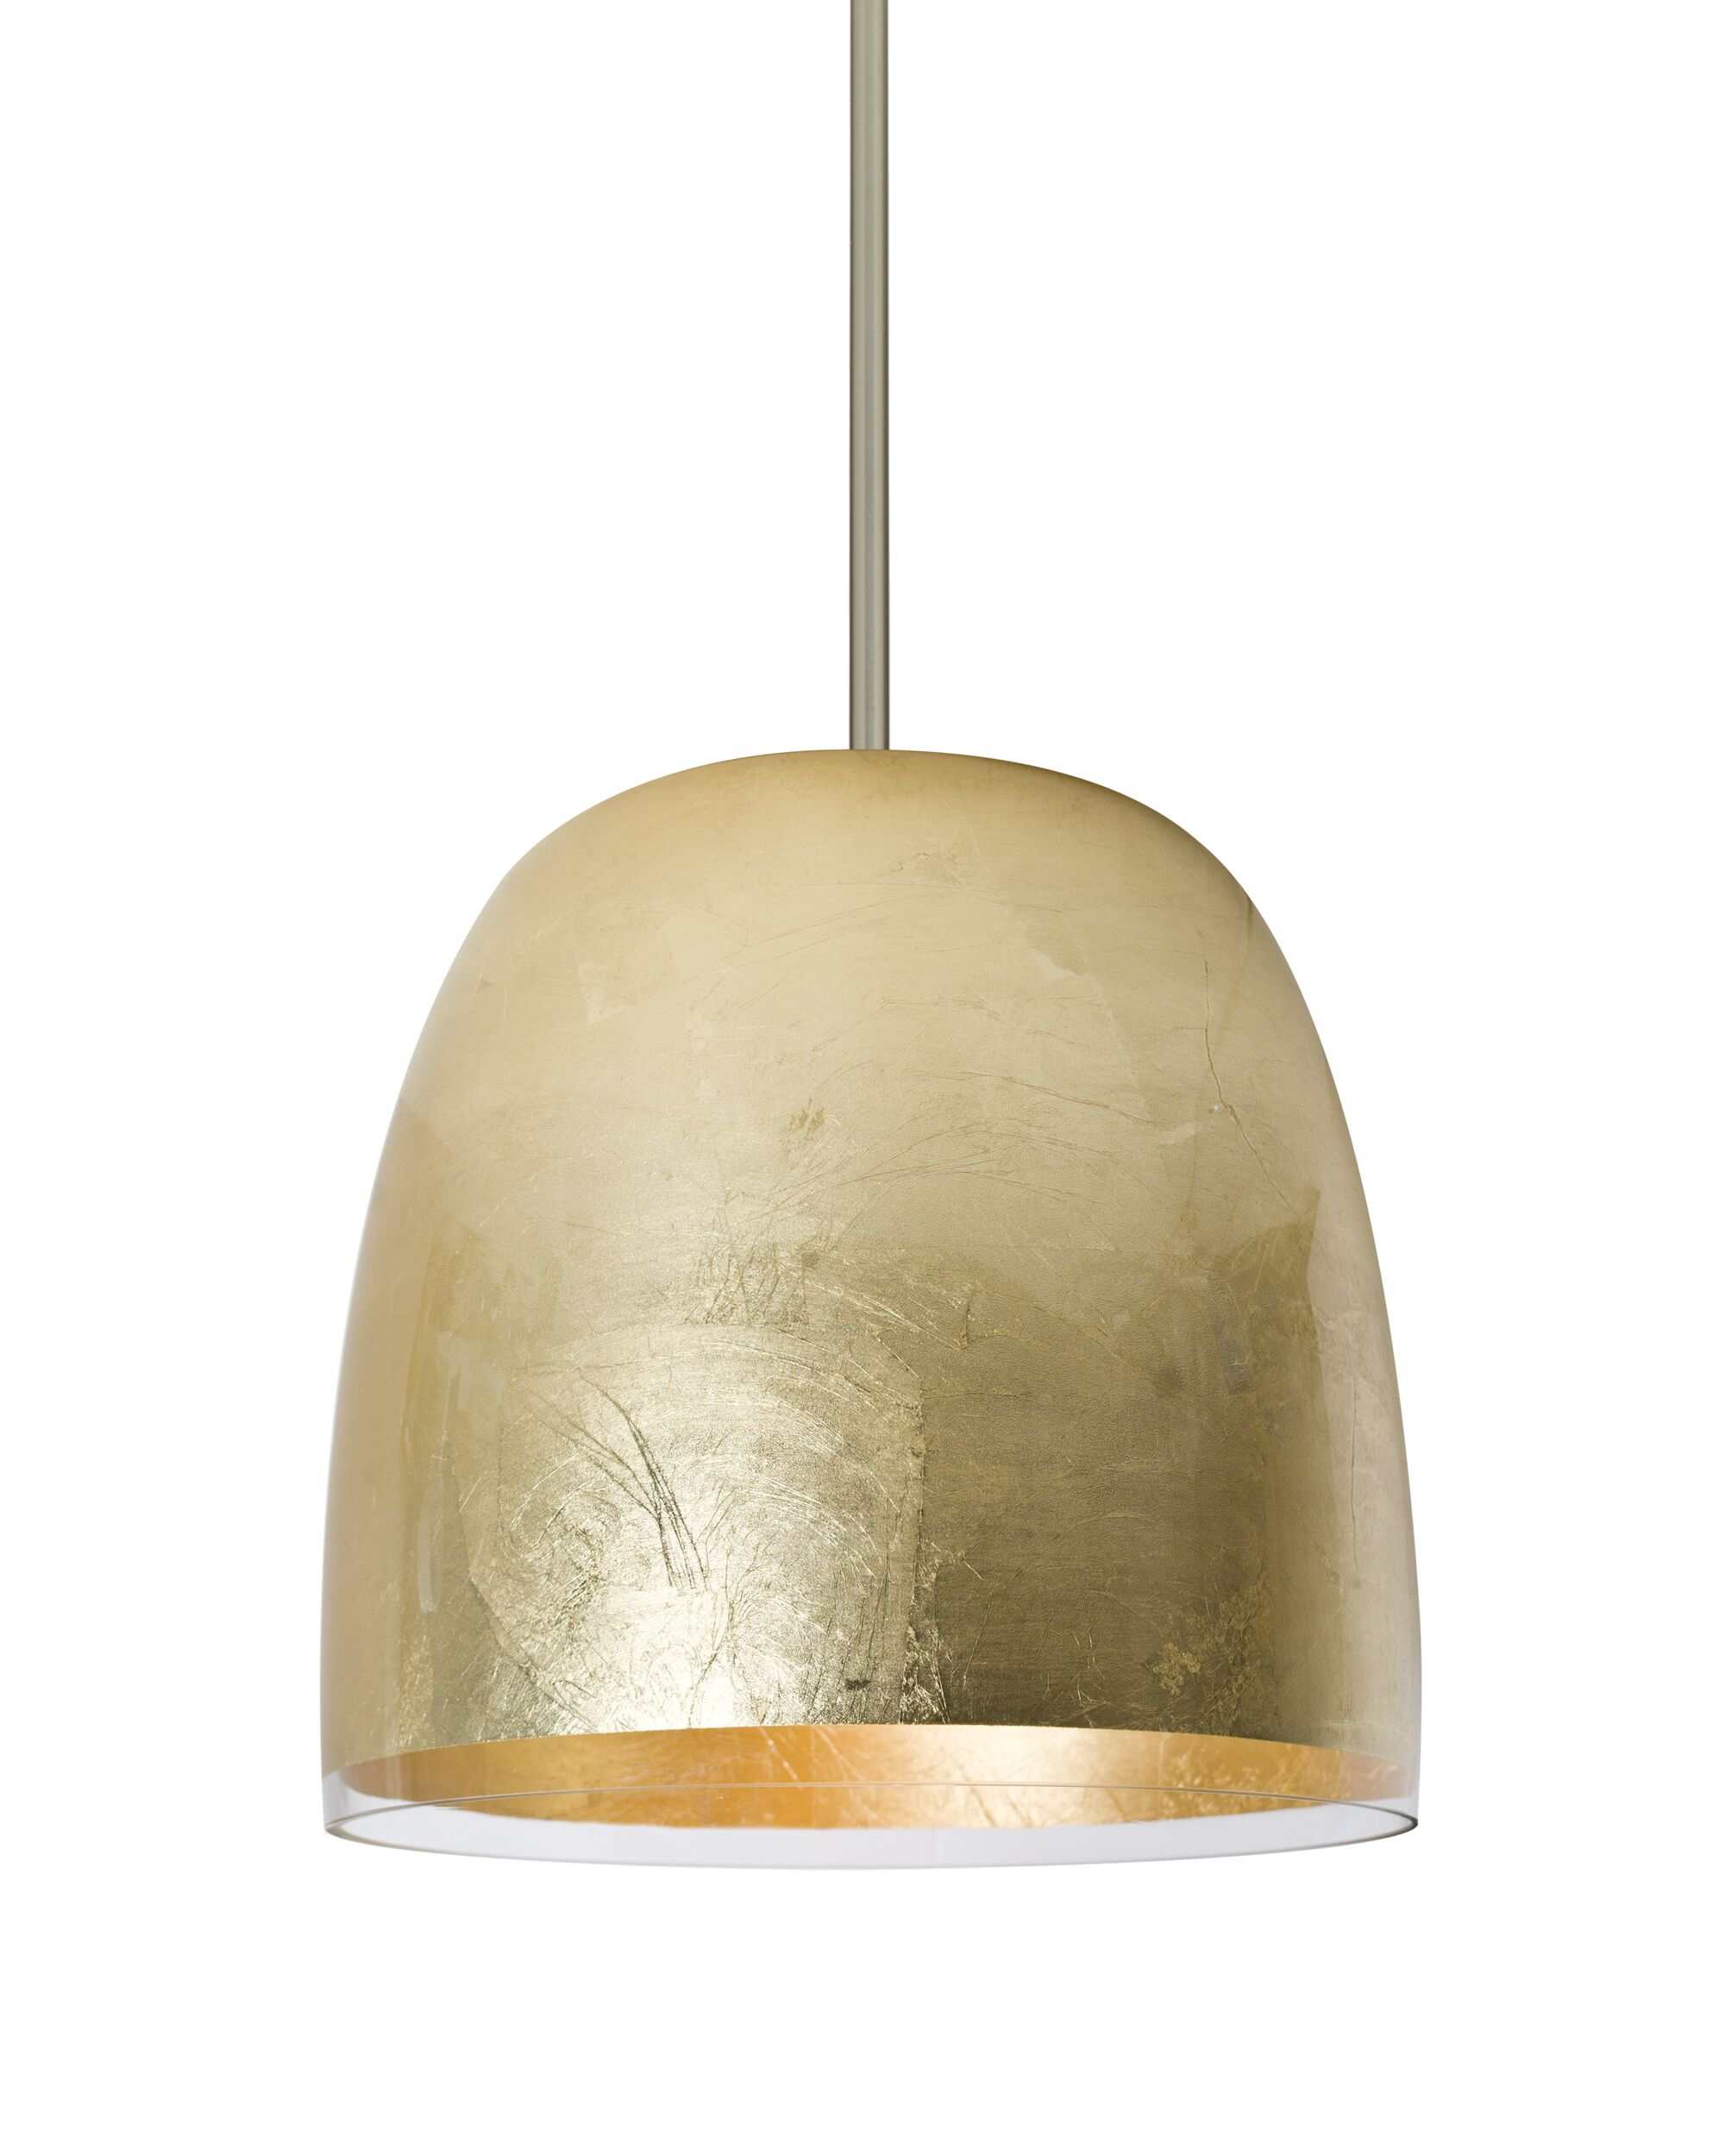 Clarissa 1-Light Dome Pendant Shade Color: Gold Foil, Finish: Satin Nickel